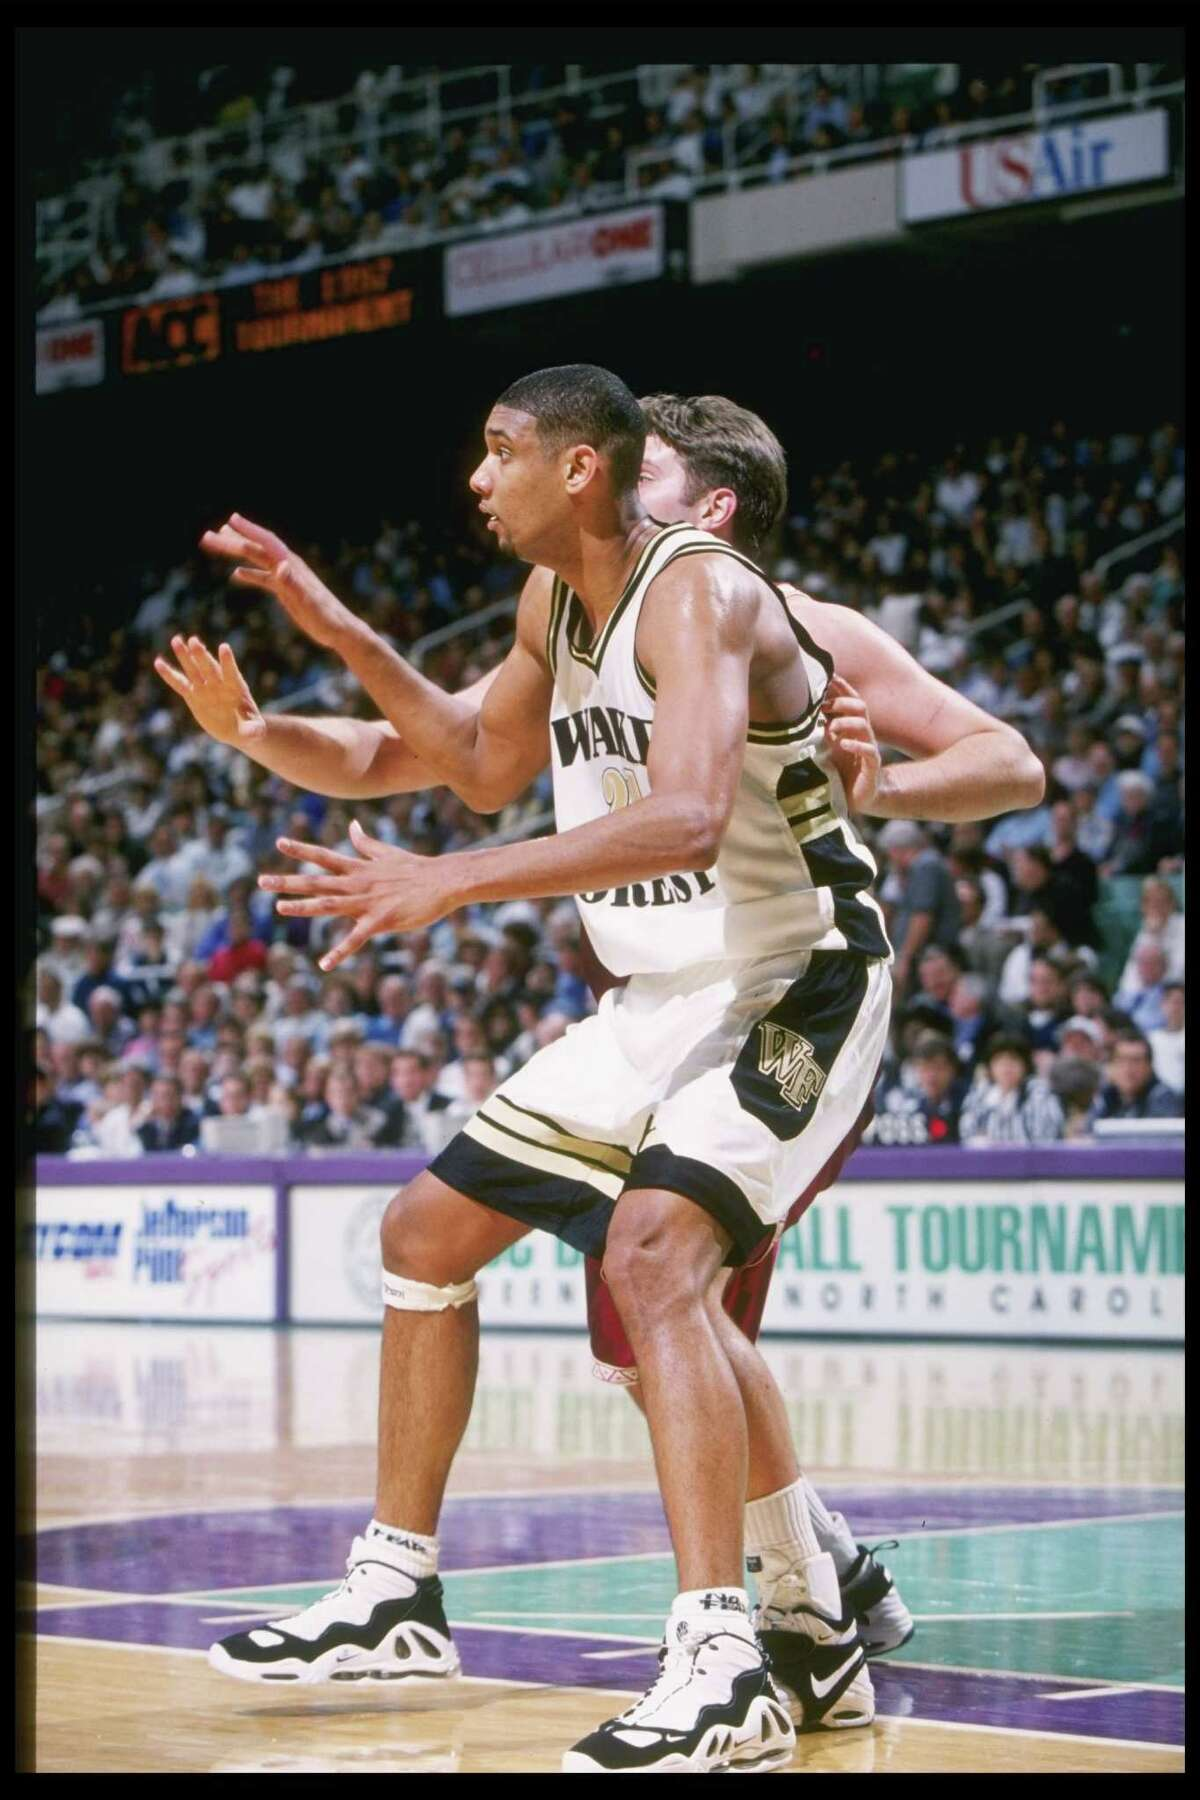 In 1997 while at Wake Forest, Duncan played in the Nike Uptempo Max 3.